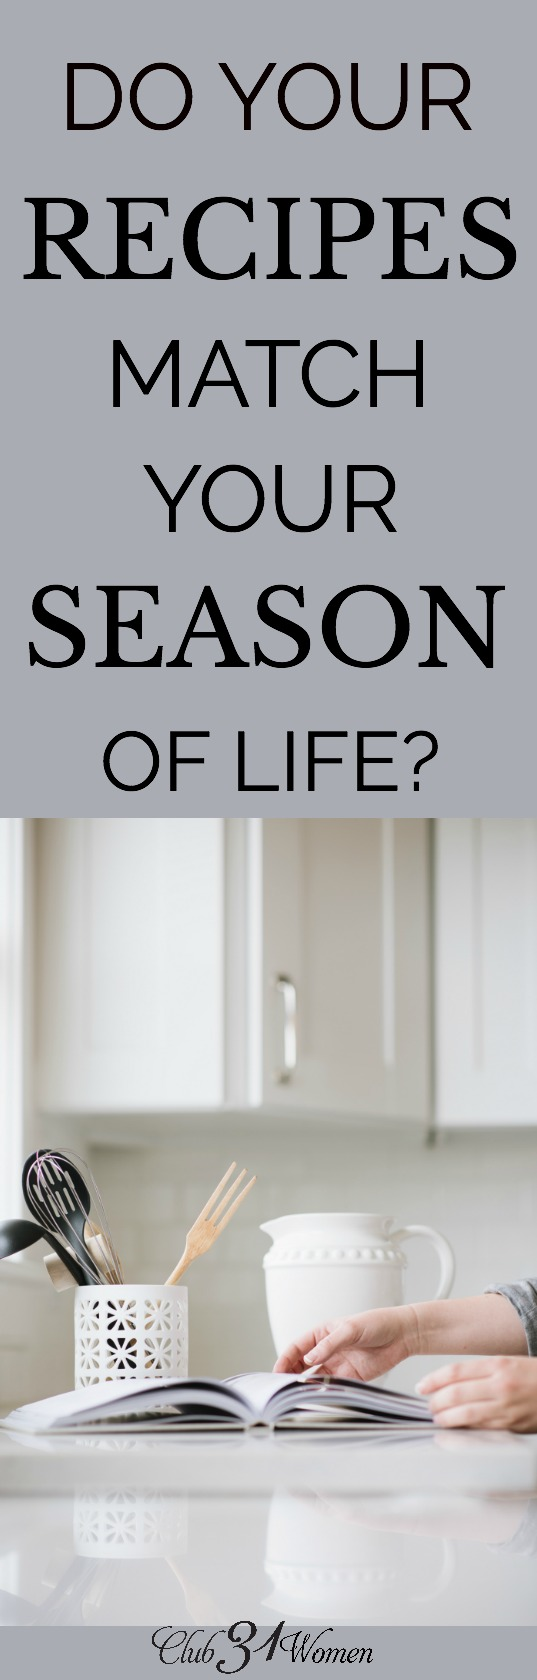 Are you using recipes that match the season of life you're in? Easy can be successful, too. Here are some great suggestions that might ease the stress.  via @Club31Women